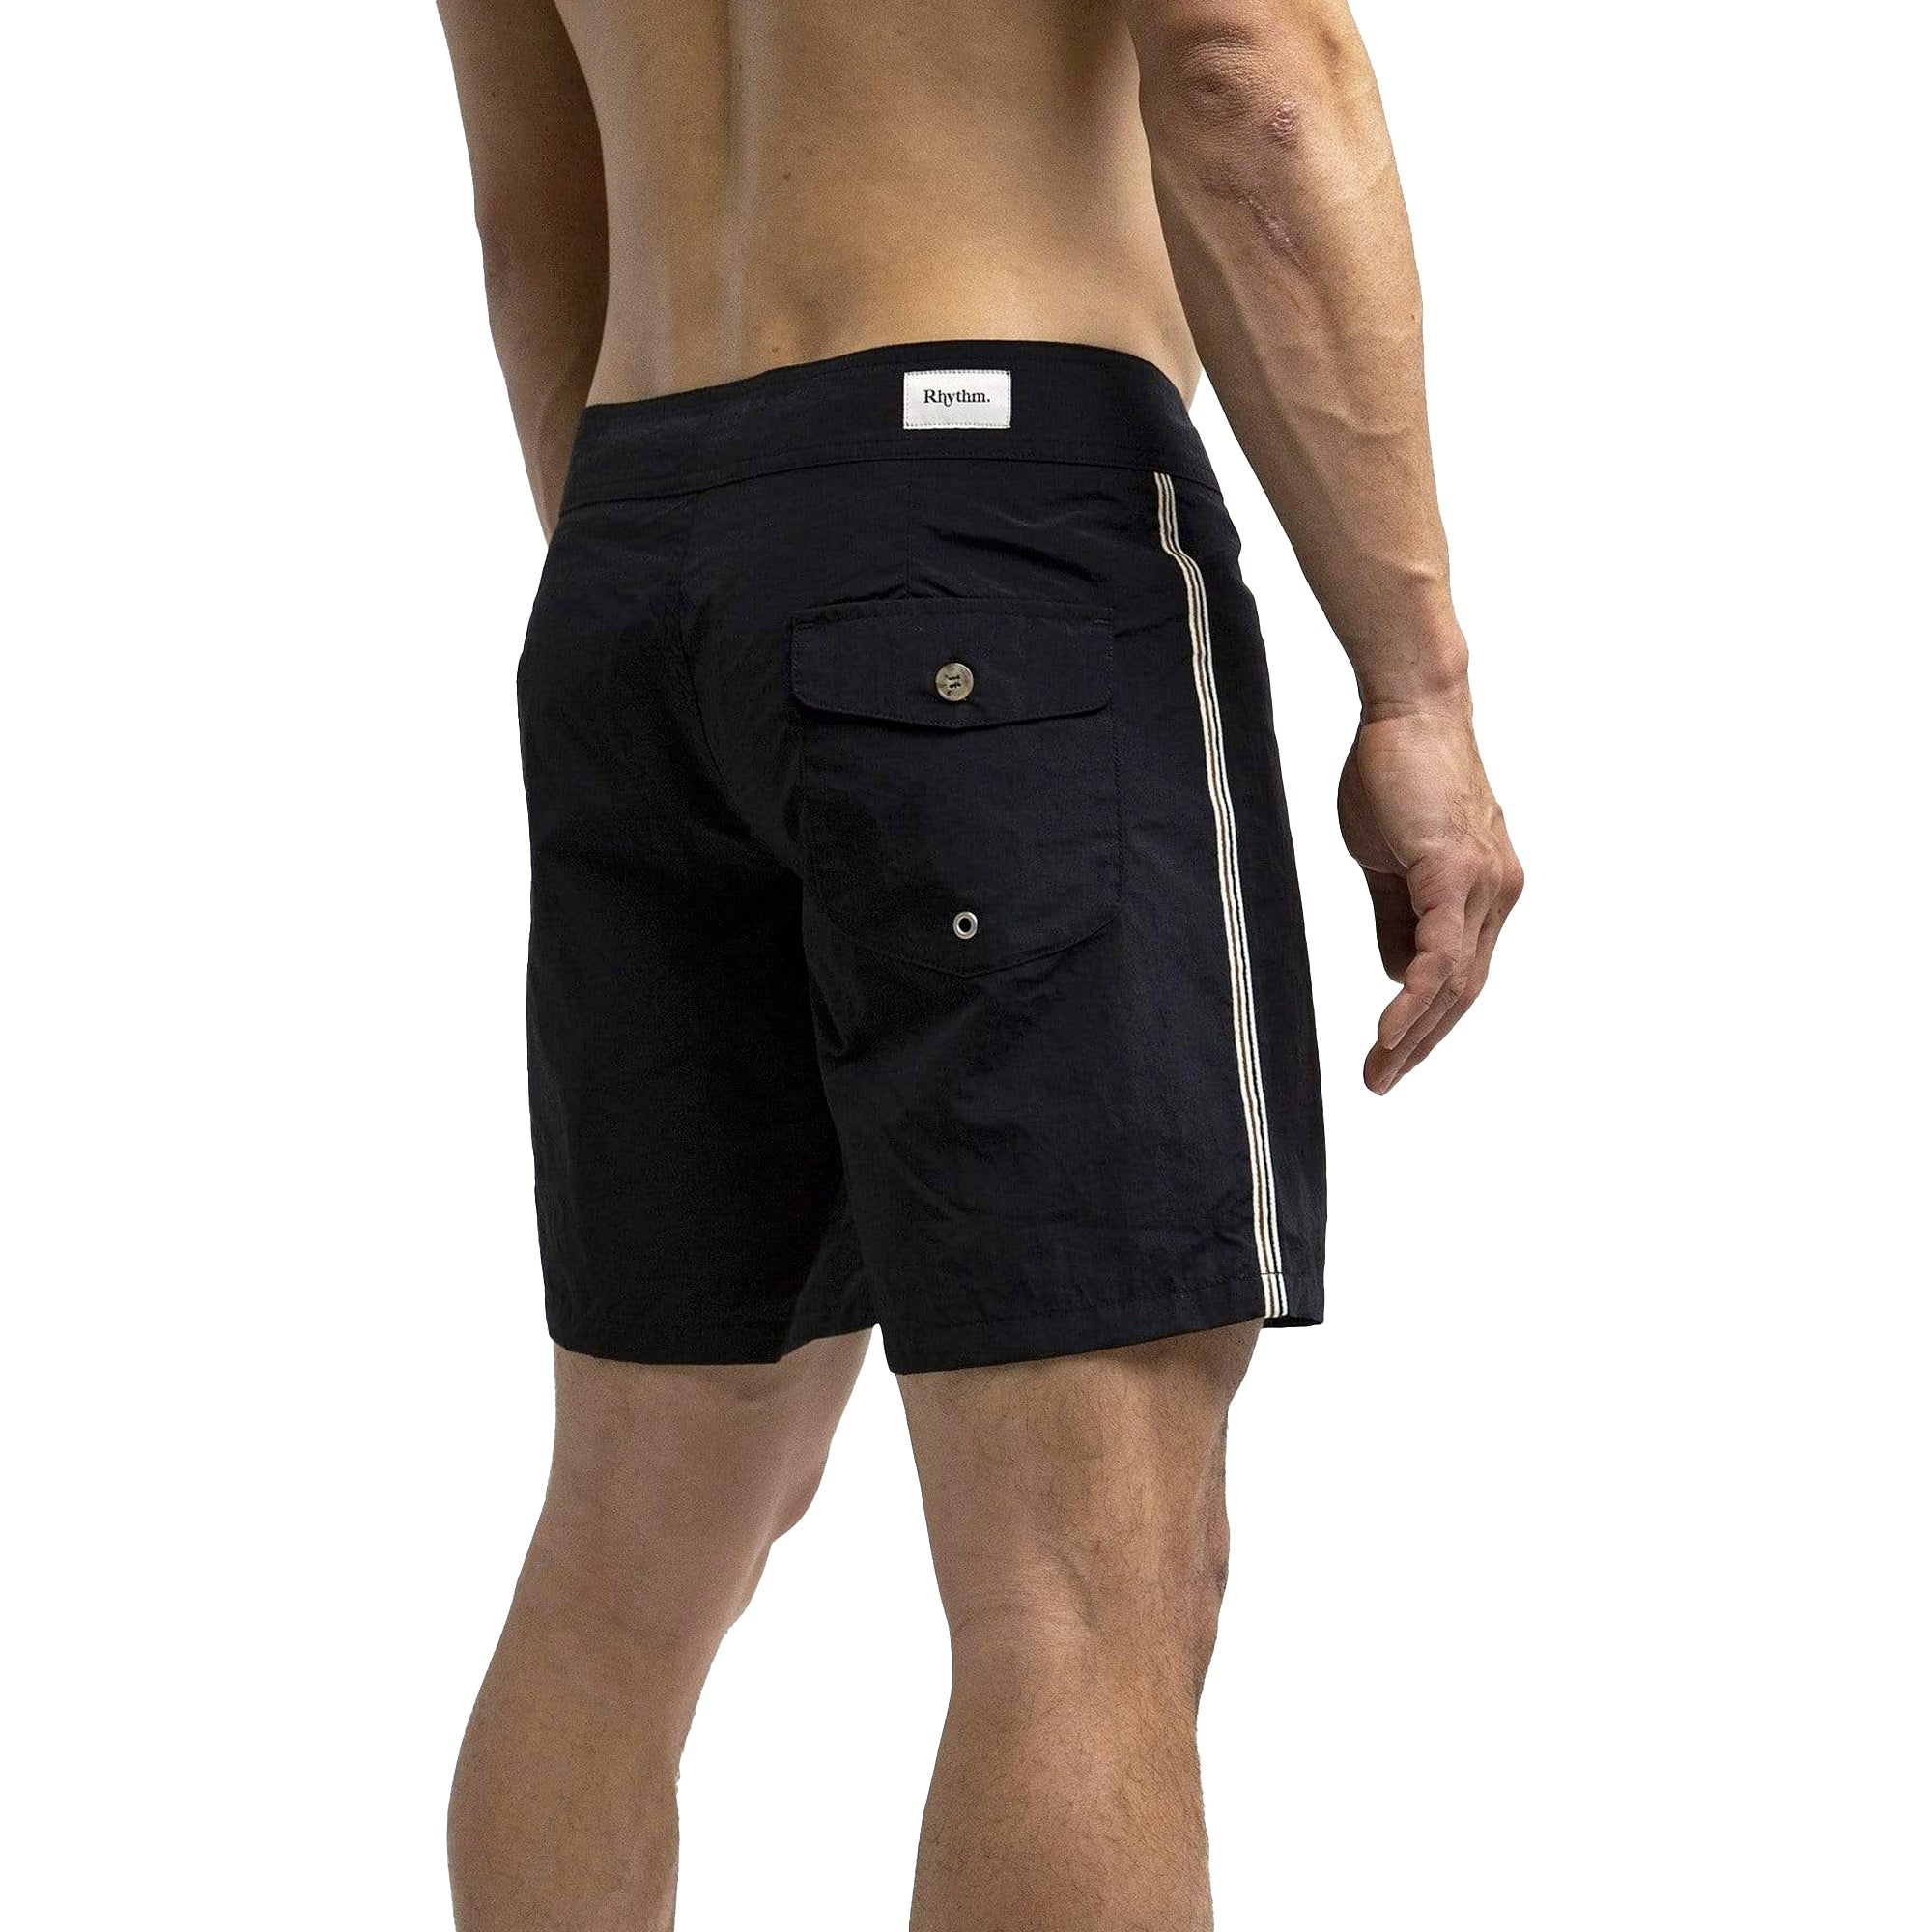 "Rhythm Heritage 16.5"" Men's Boardshorts"